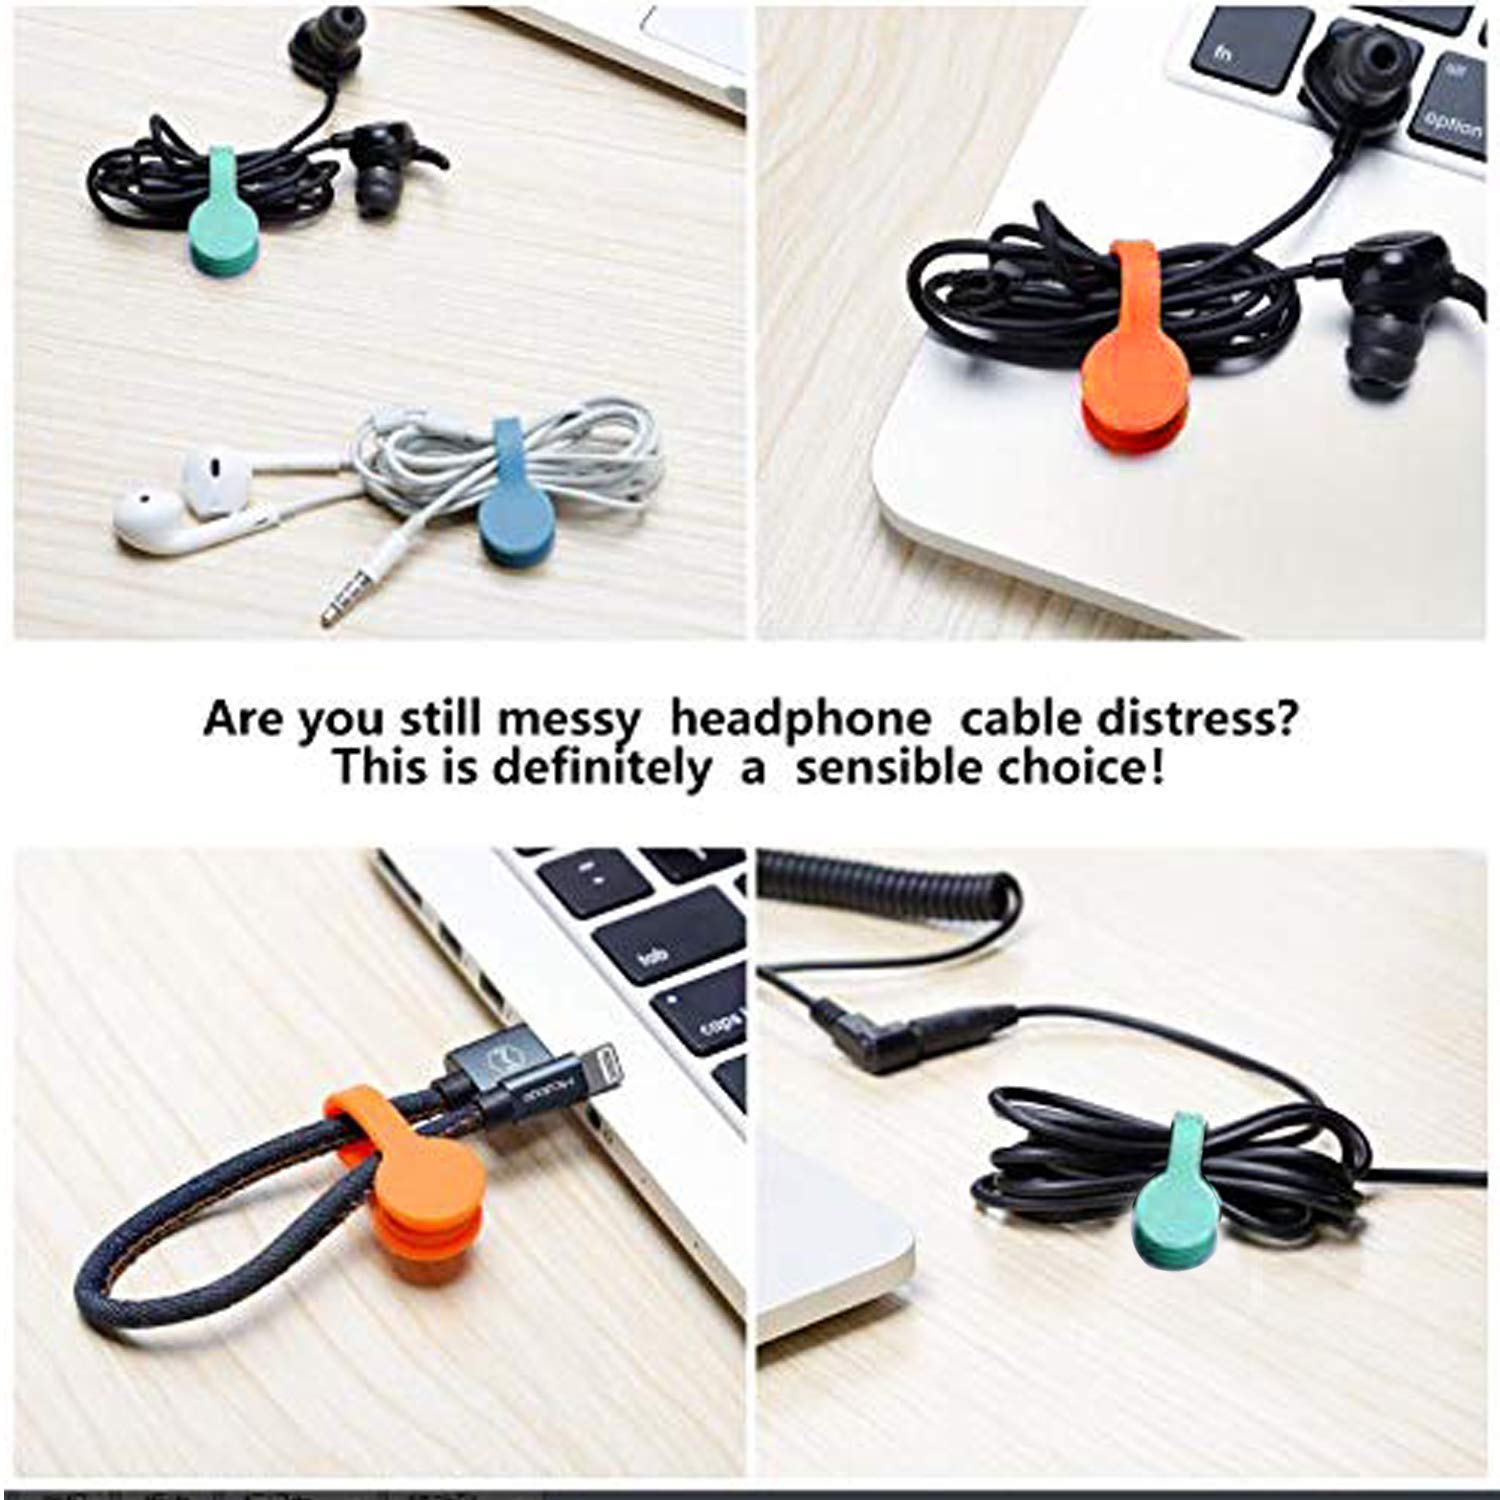 8 PCS Magnetic Earphone Winder, Aproo Magnetic Cord Winder Wrap for Headphones/Date USB Cable,Soft Silicone Earphone Cable Clips Organizer for iPhone/iPad/Galaxy, Also Use as Bookmarks/Keychain